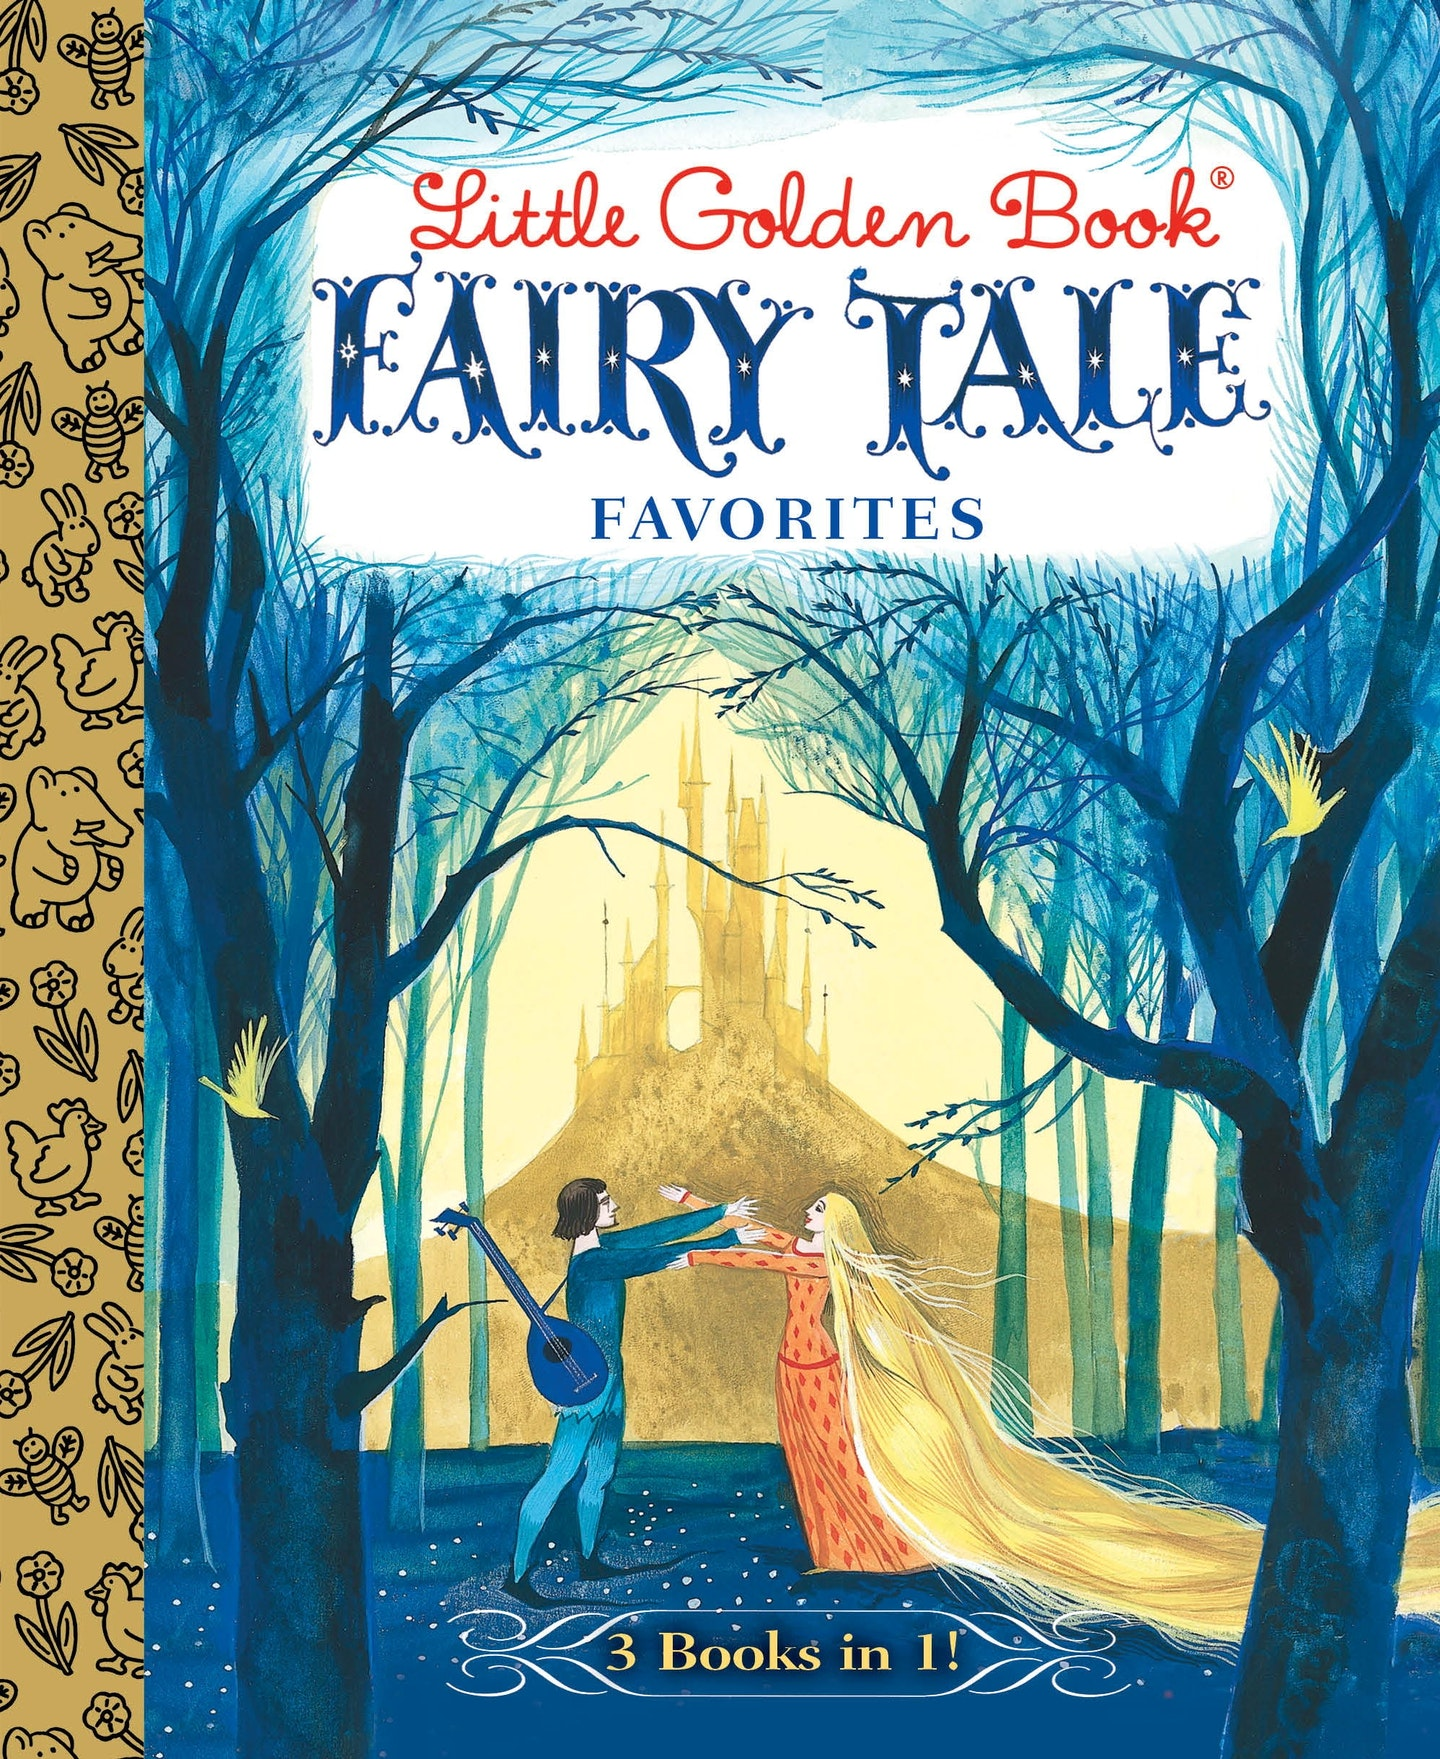 Minimalist Fairy Tale Book Covers : Little golden book fairy tale favorites in penguin